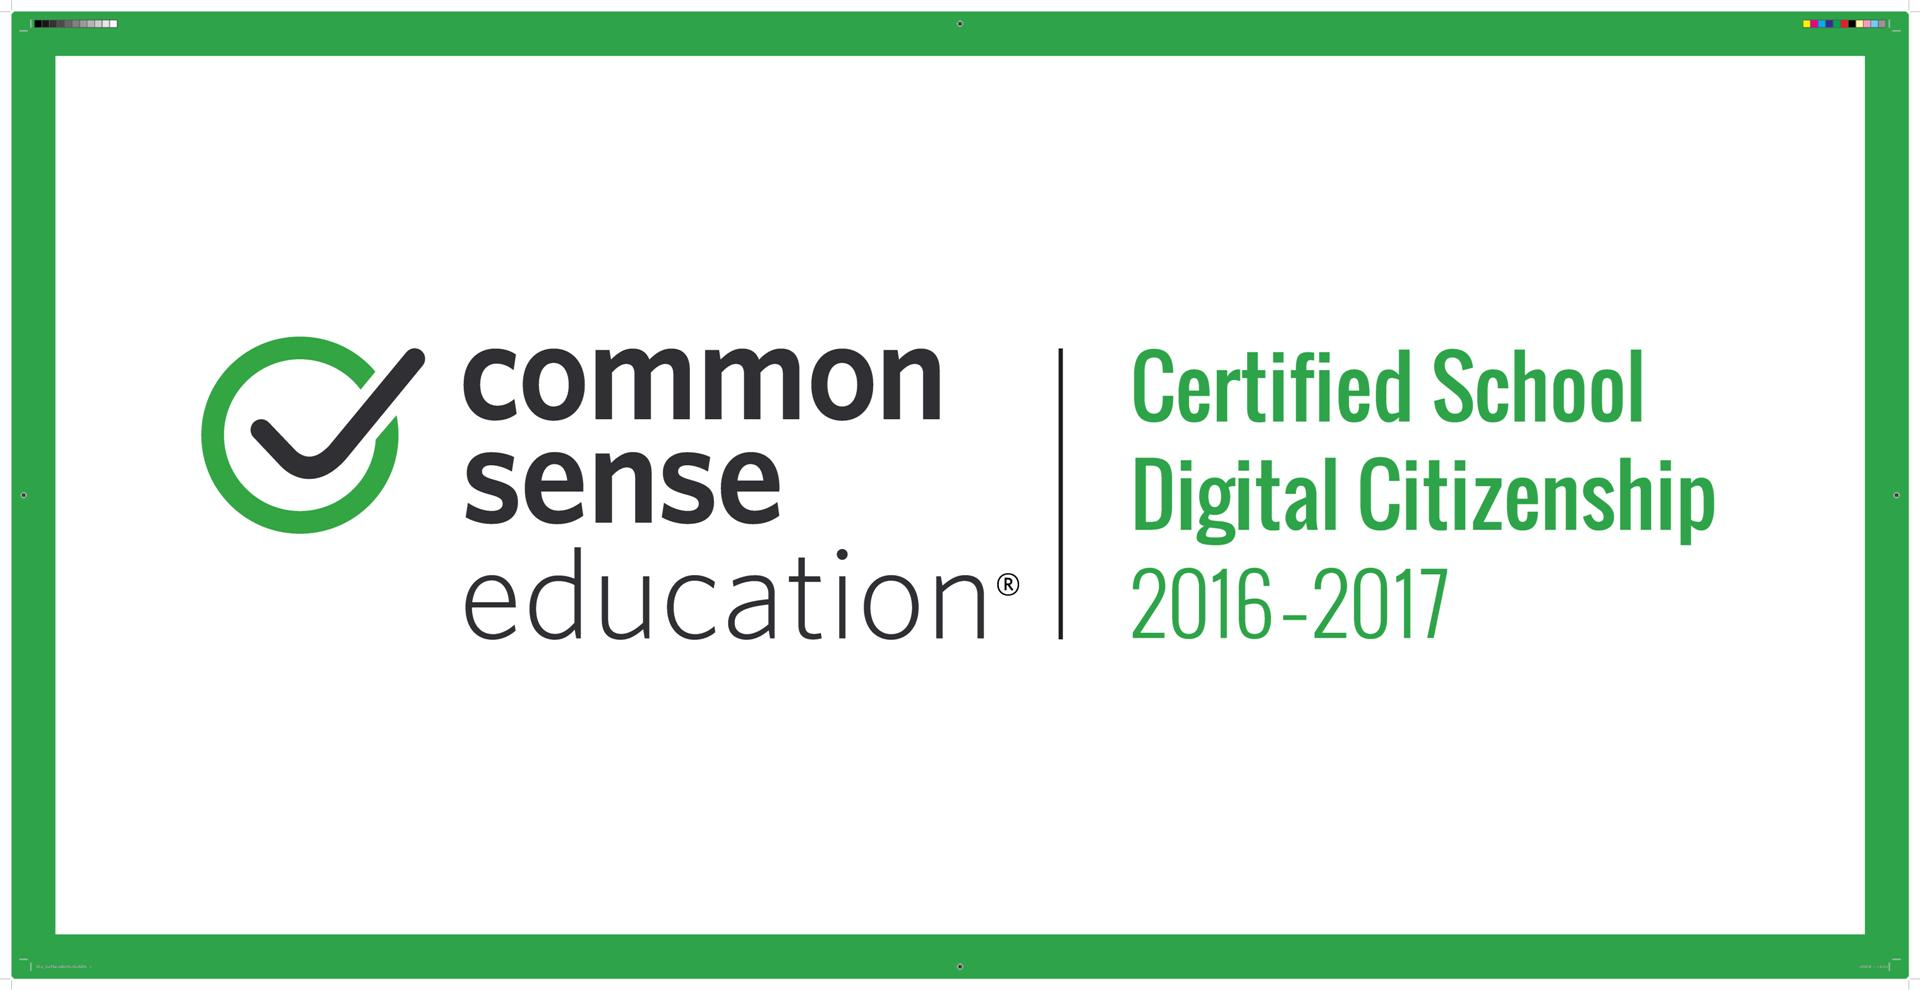 Common Sense Certified School in Digital Citizenship